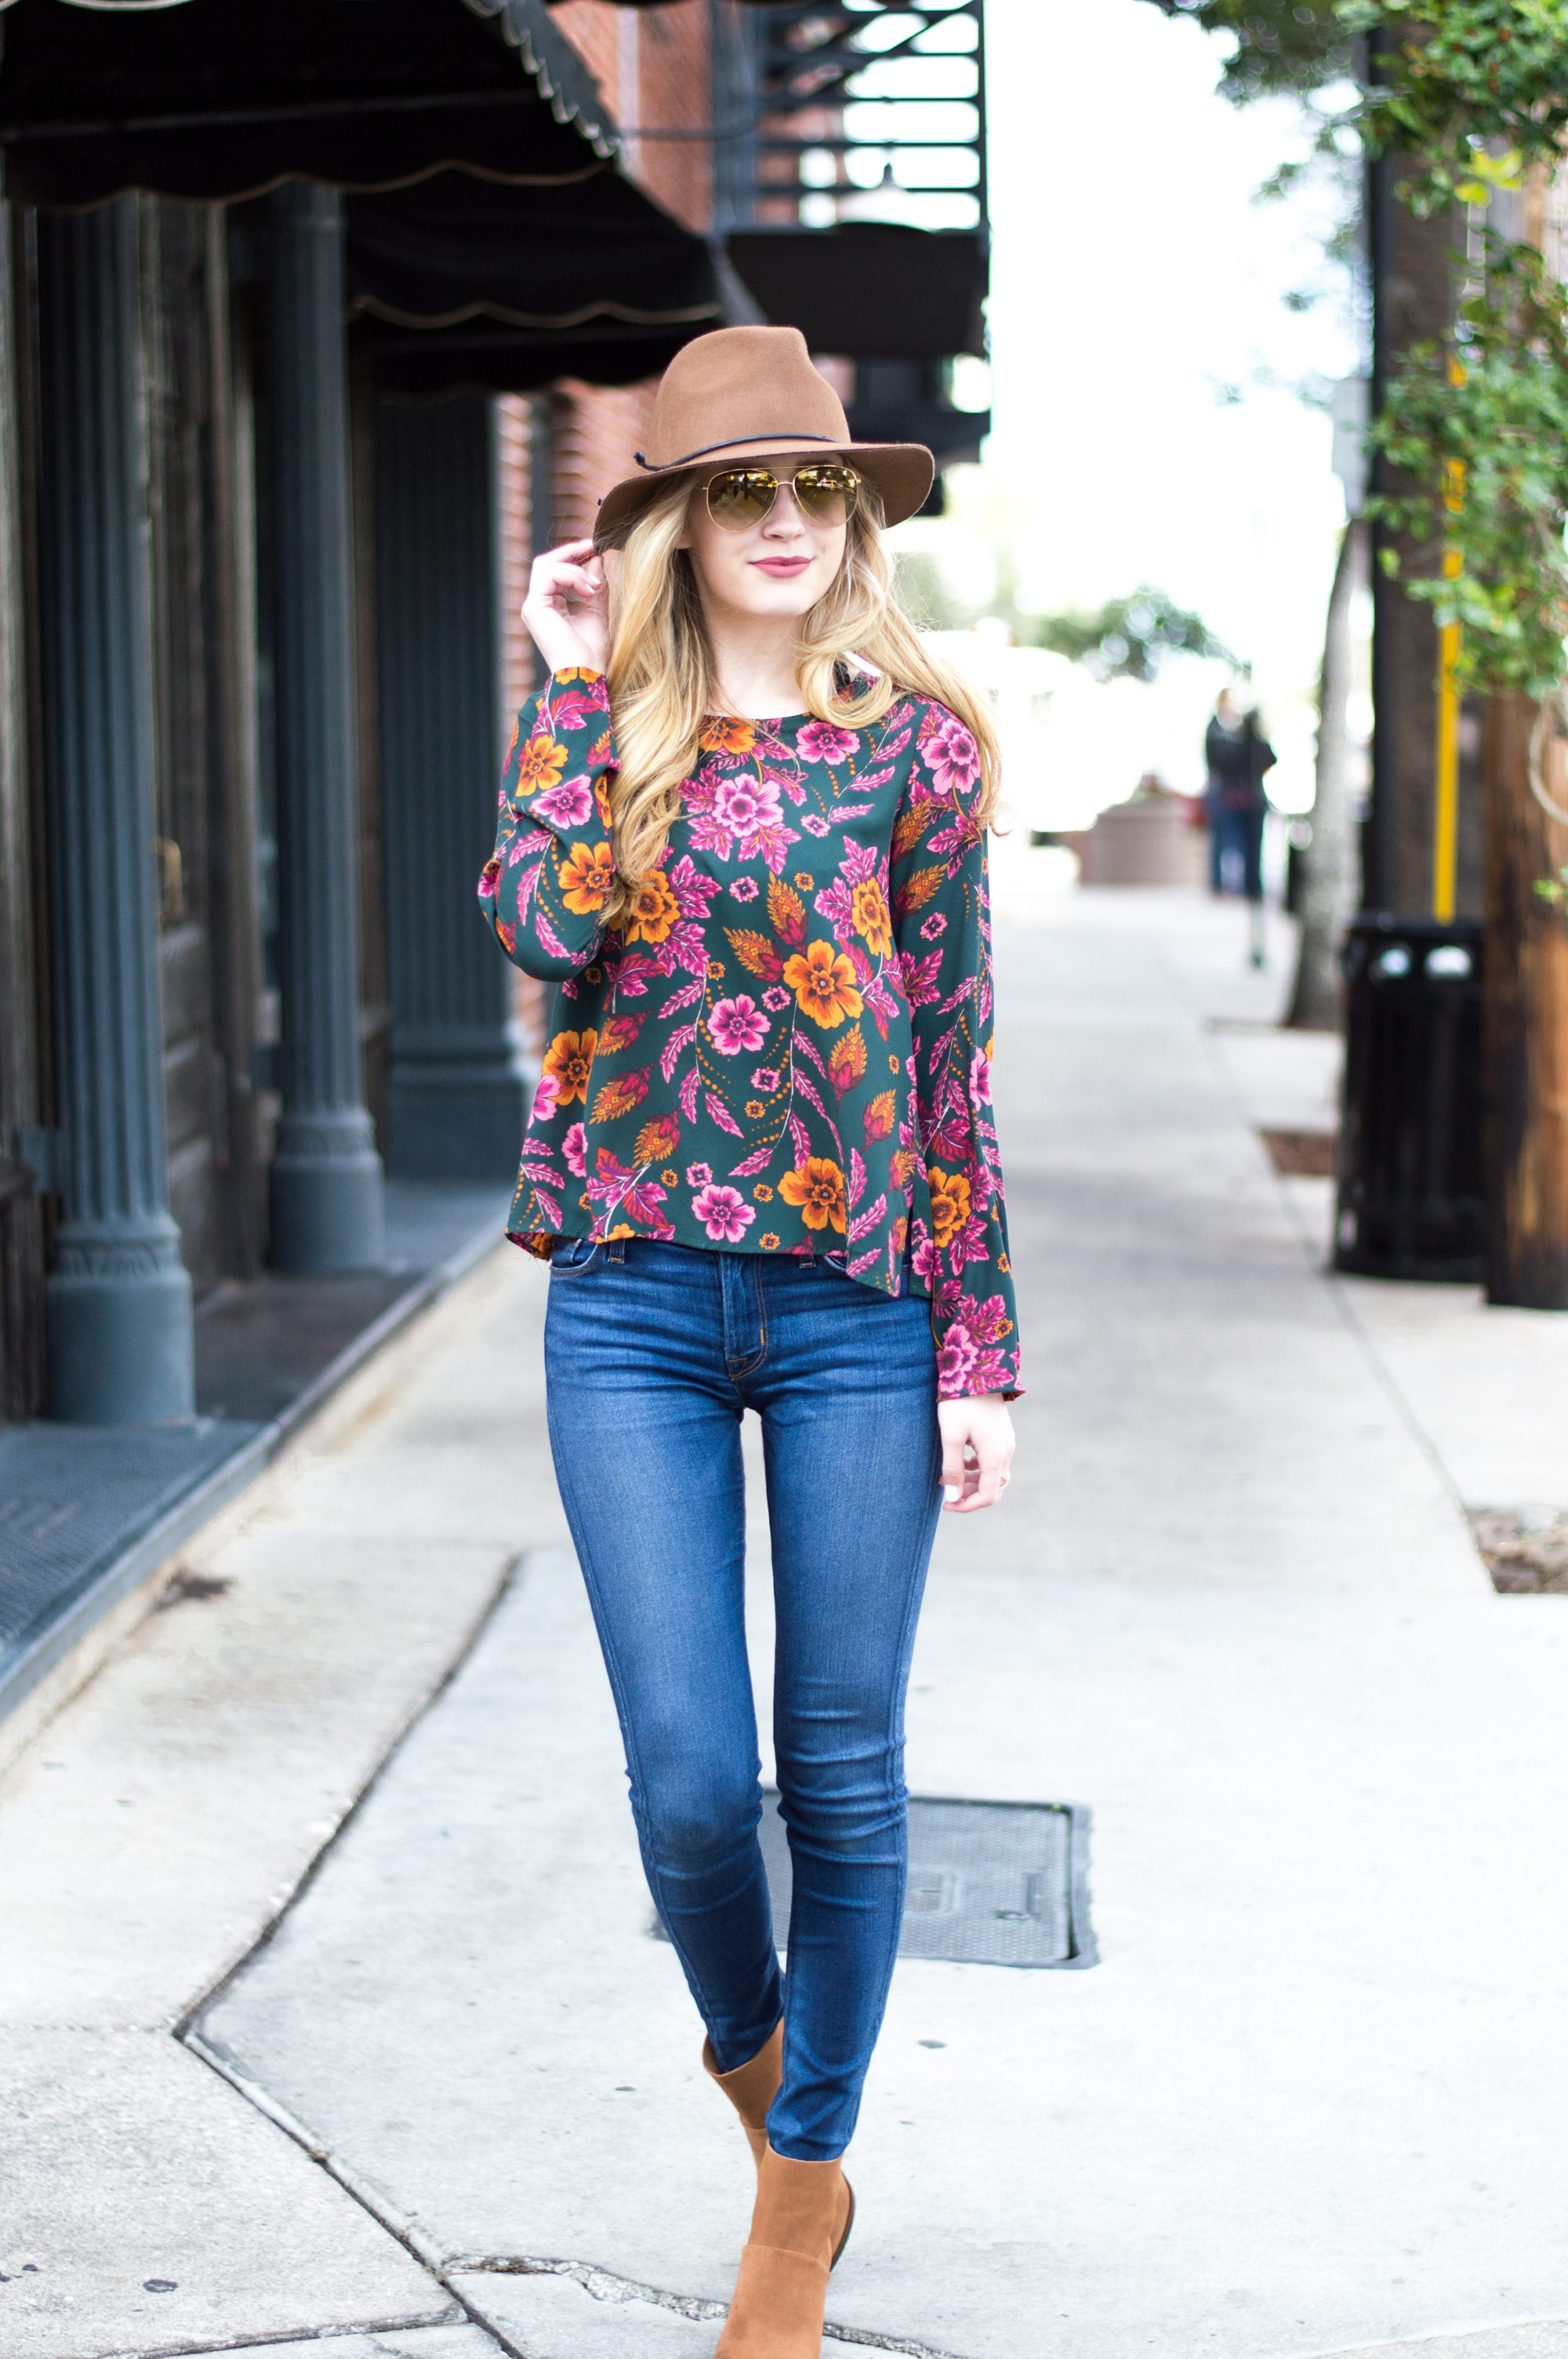 styelled-blog-fashion-lifestyle-brick-city-closet-hudson-jeans-denim-fblogger-style-blogger-ootd-outfit-burberry-central-florida-hats-fedora-floral-fall-03